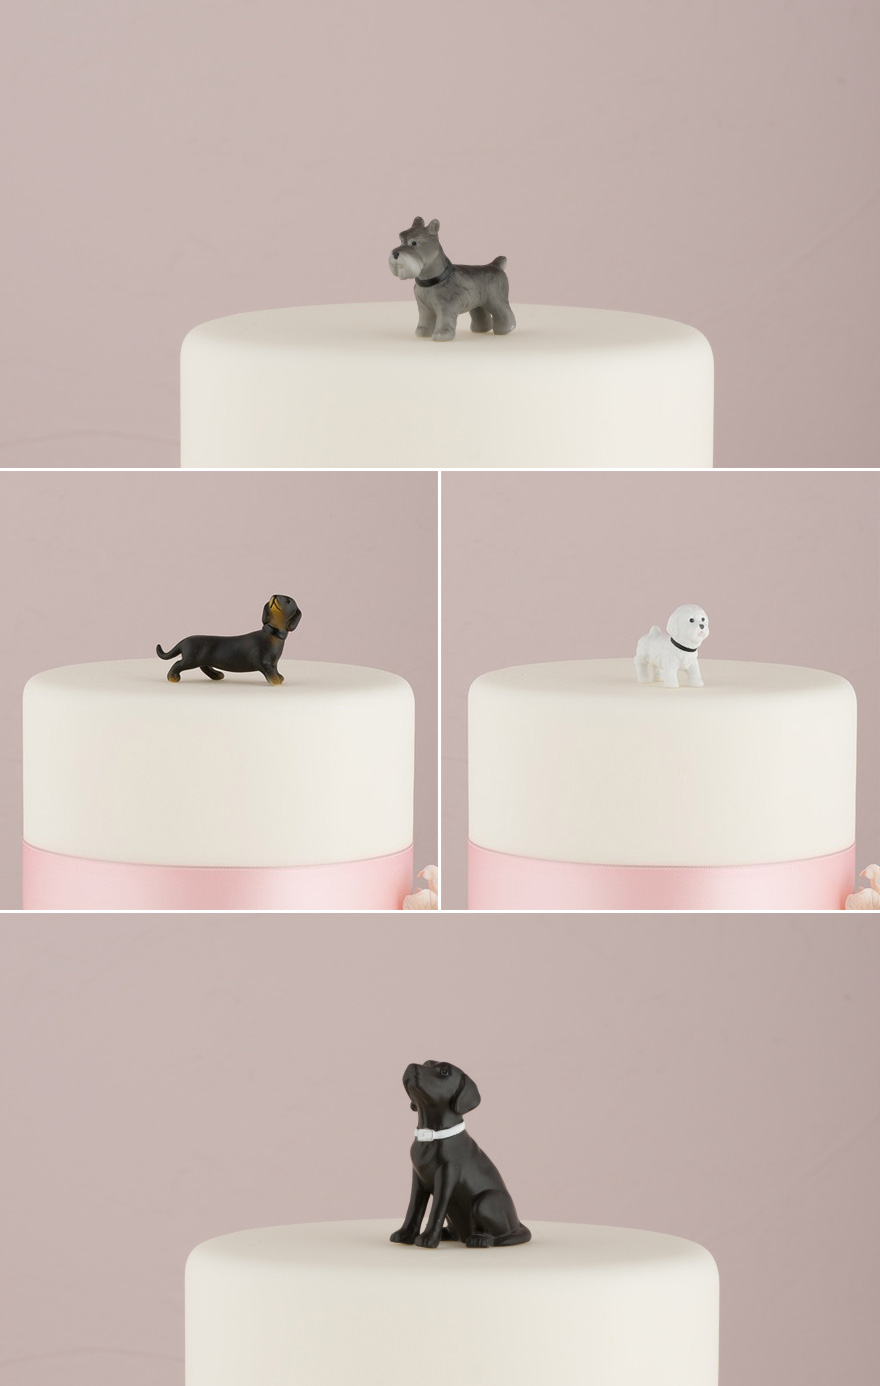 Pet Cake Toppers - Dog Cake Toppers - Miniature Terrier Dog Figurine, Labrador Figurine, Black and Tan Dachshund Figurine, and Bichon Frise Figurines | Confetti.co.uk